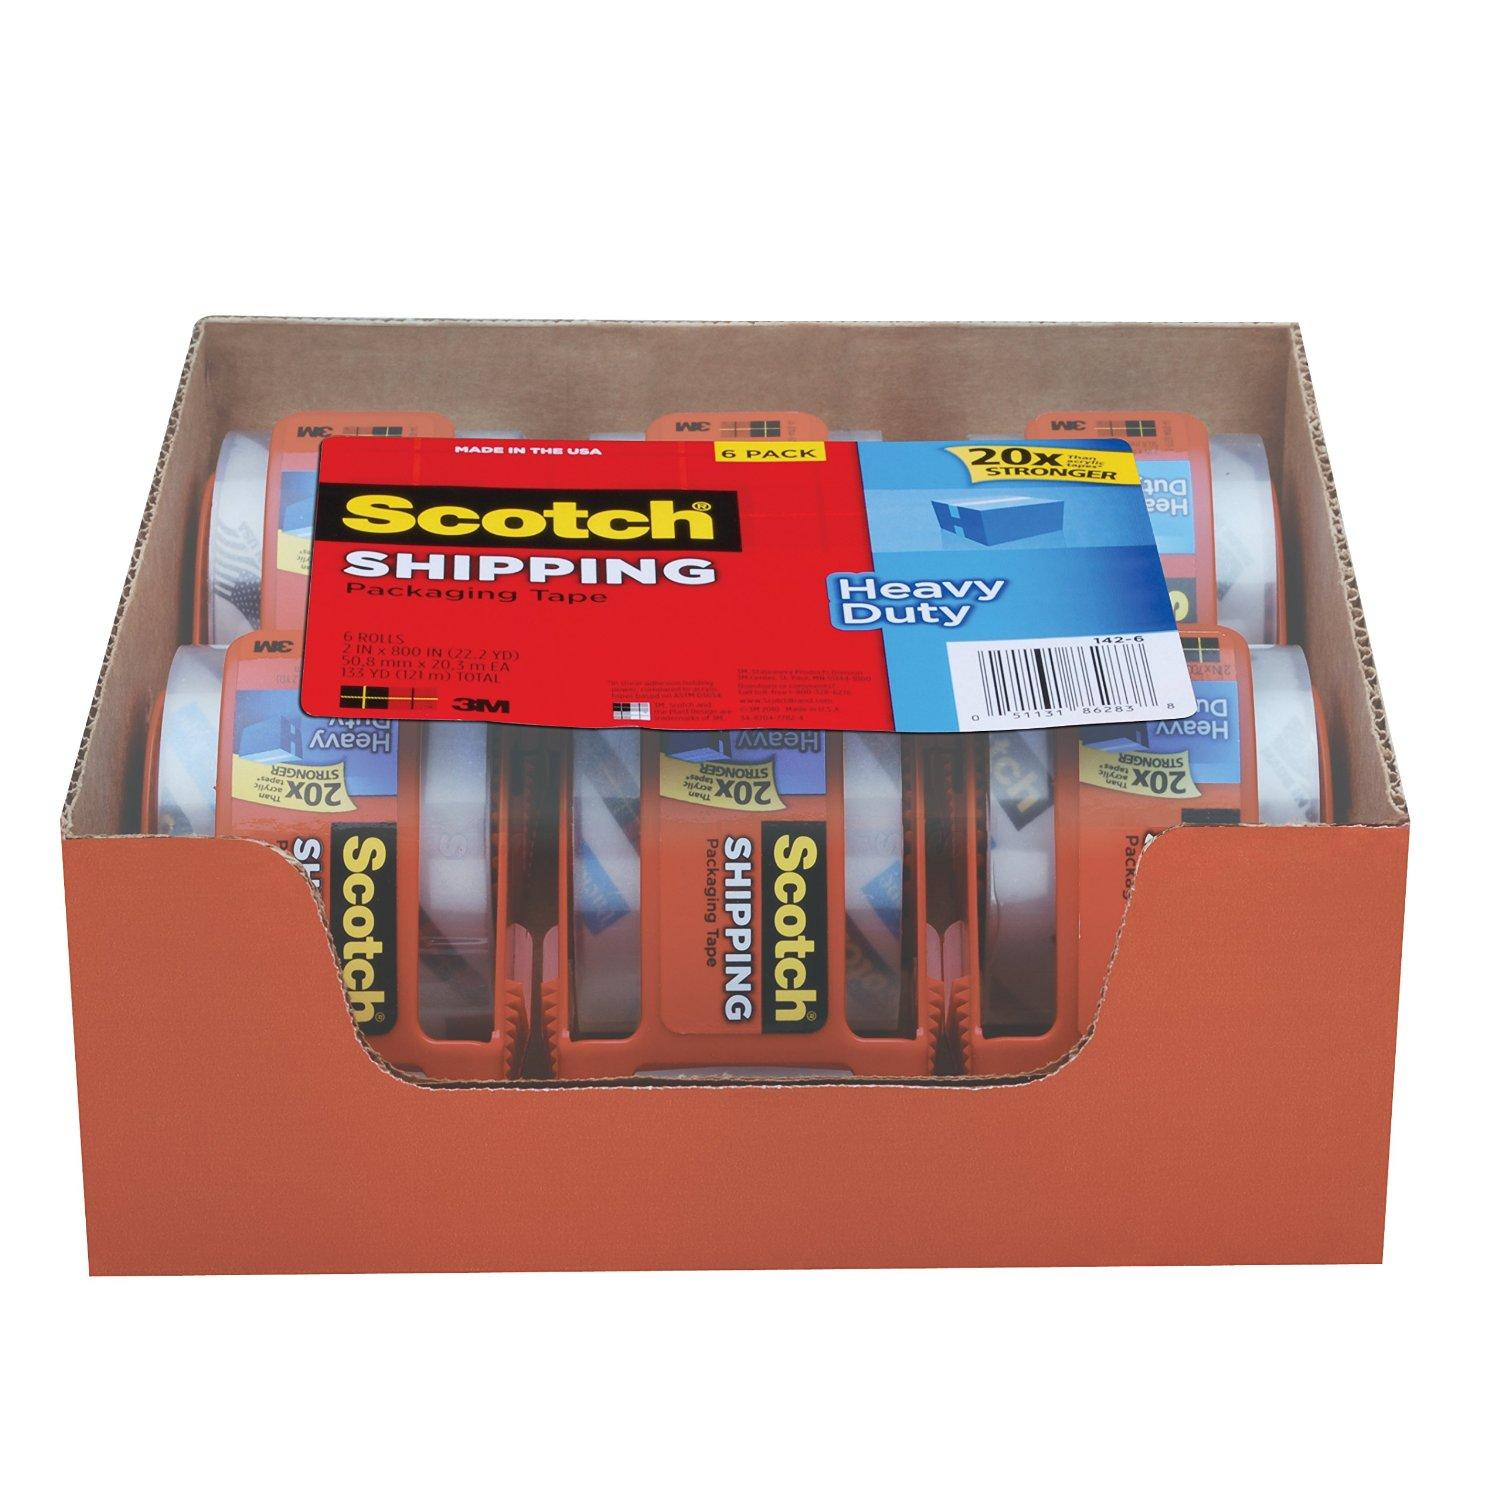 $10.18Scotch Heavy Duty Shipping Packaging Tape 6 Rolls with Dispenser